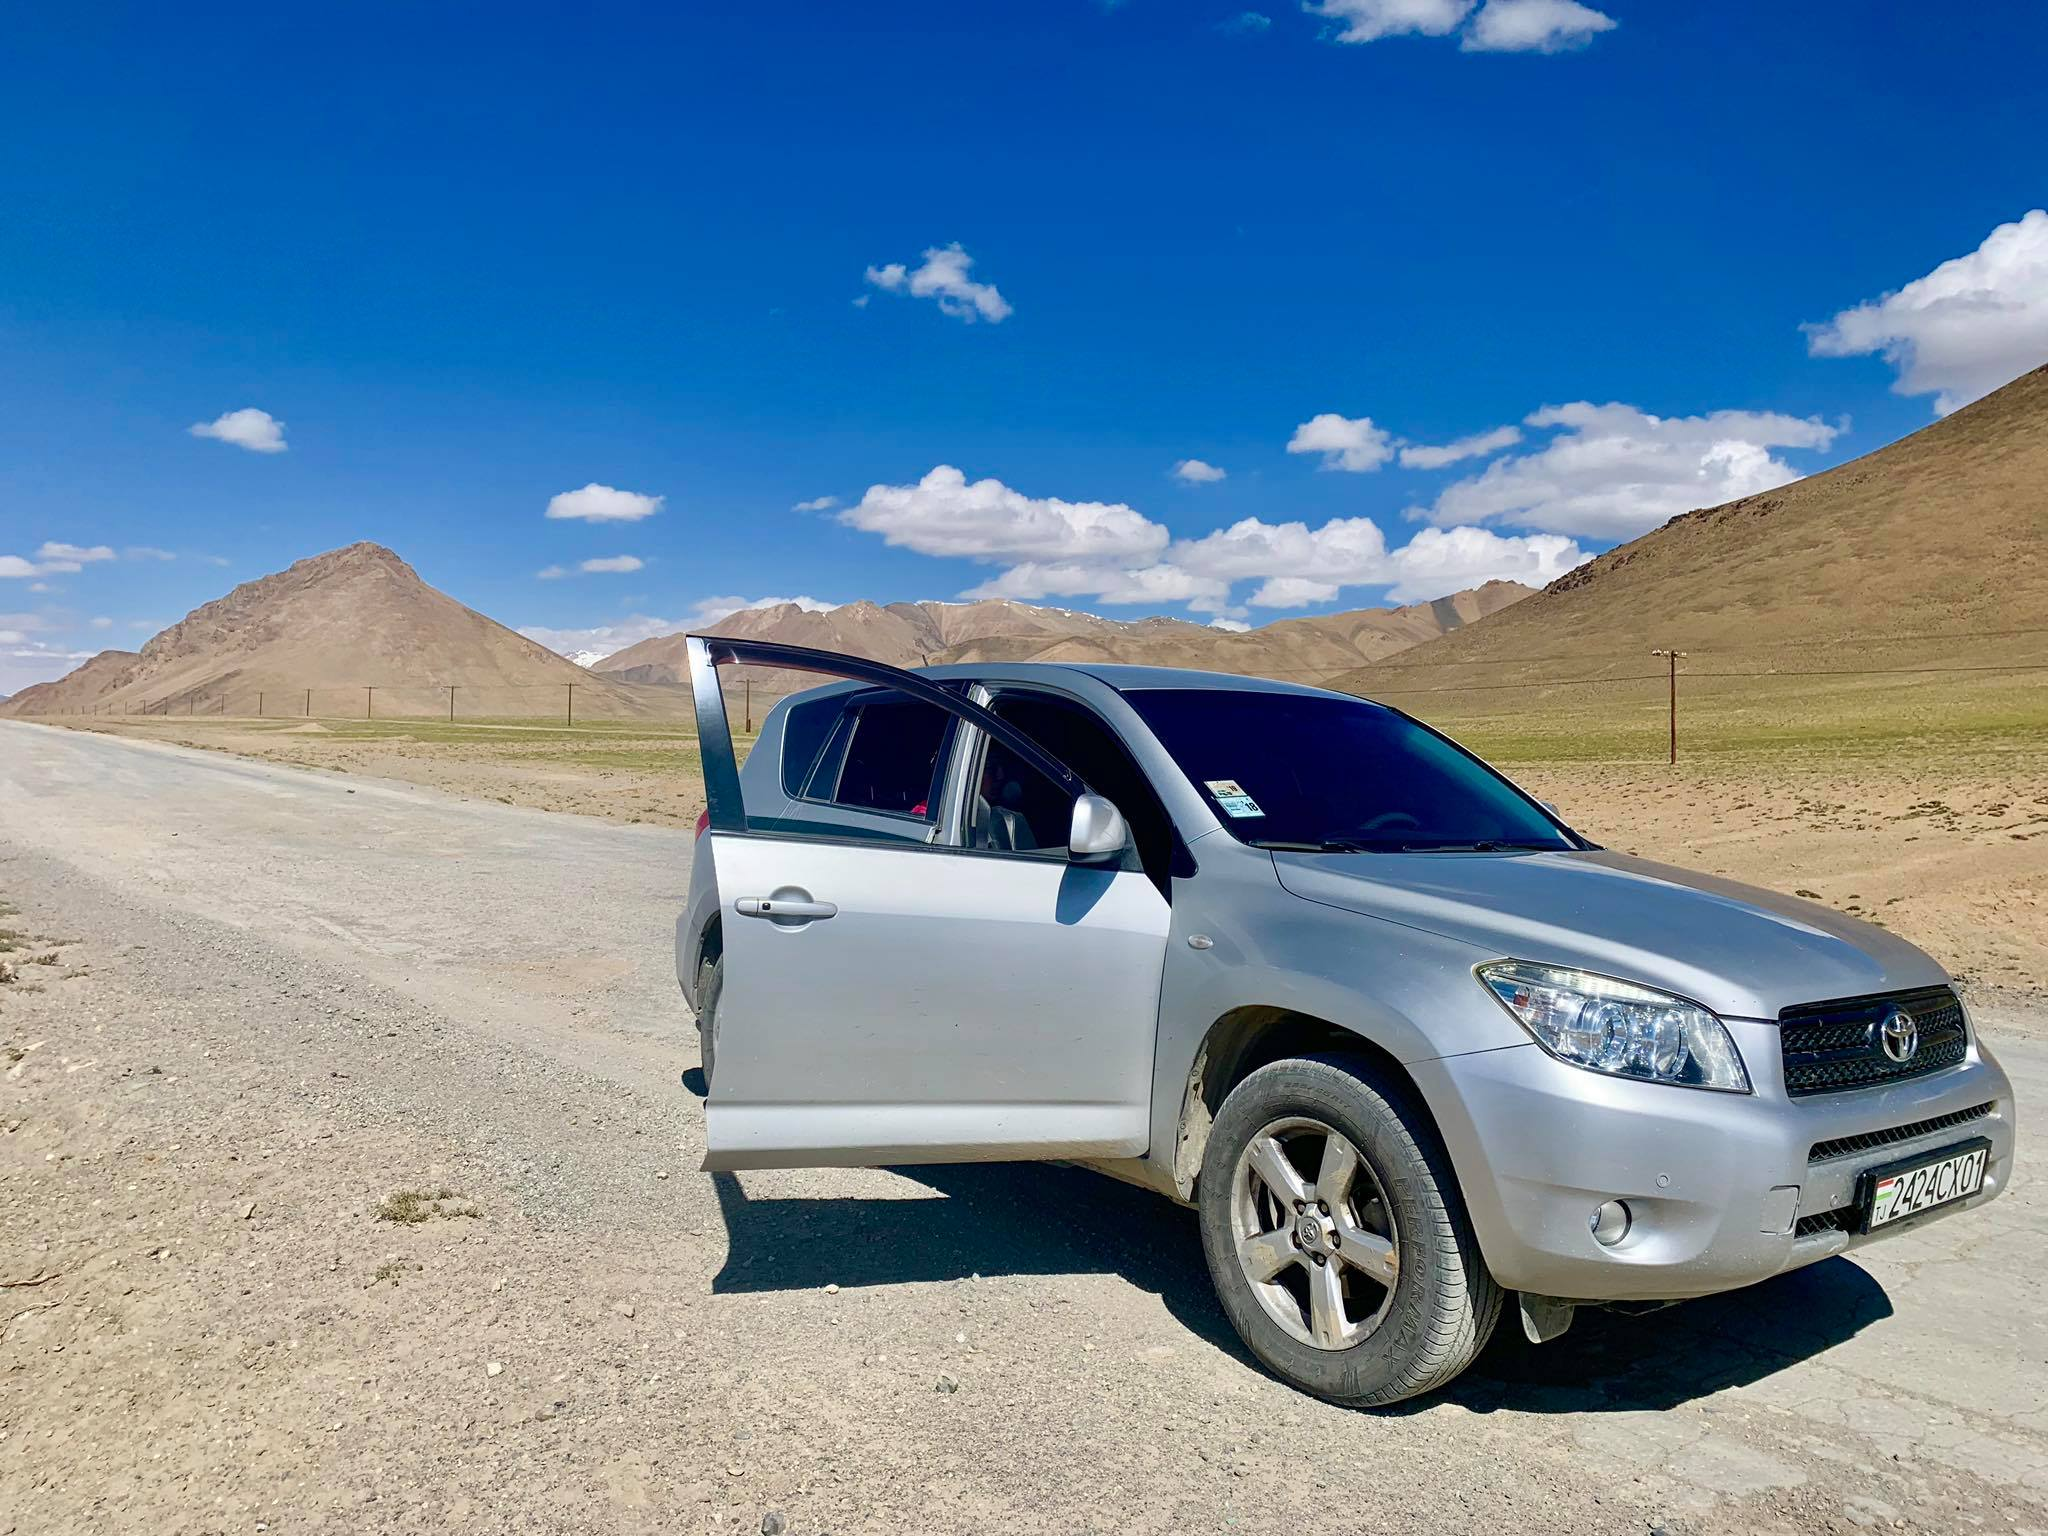 Kach Solo Travels in 2019 Our unexpected last stop during our Pamir Highway Roadtrip28.jpg